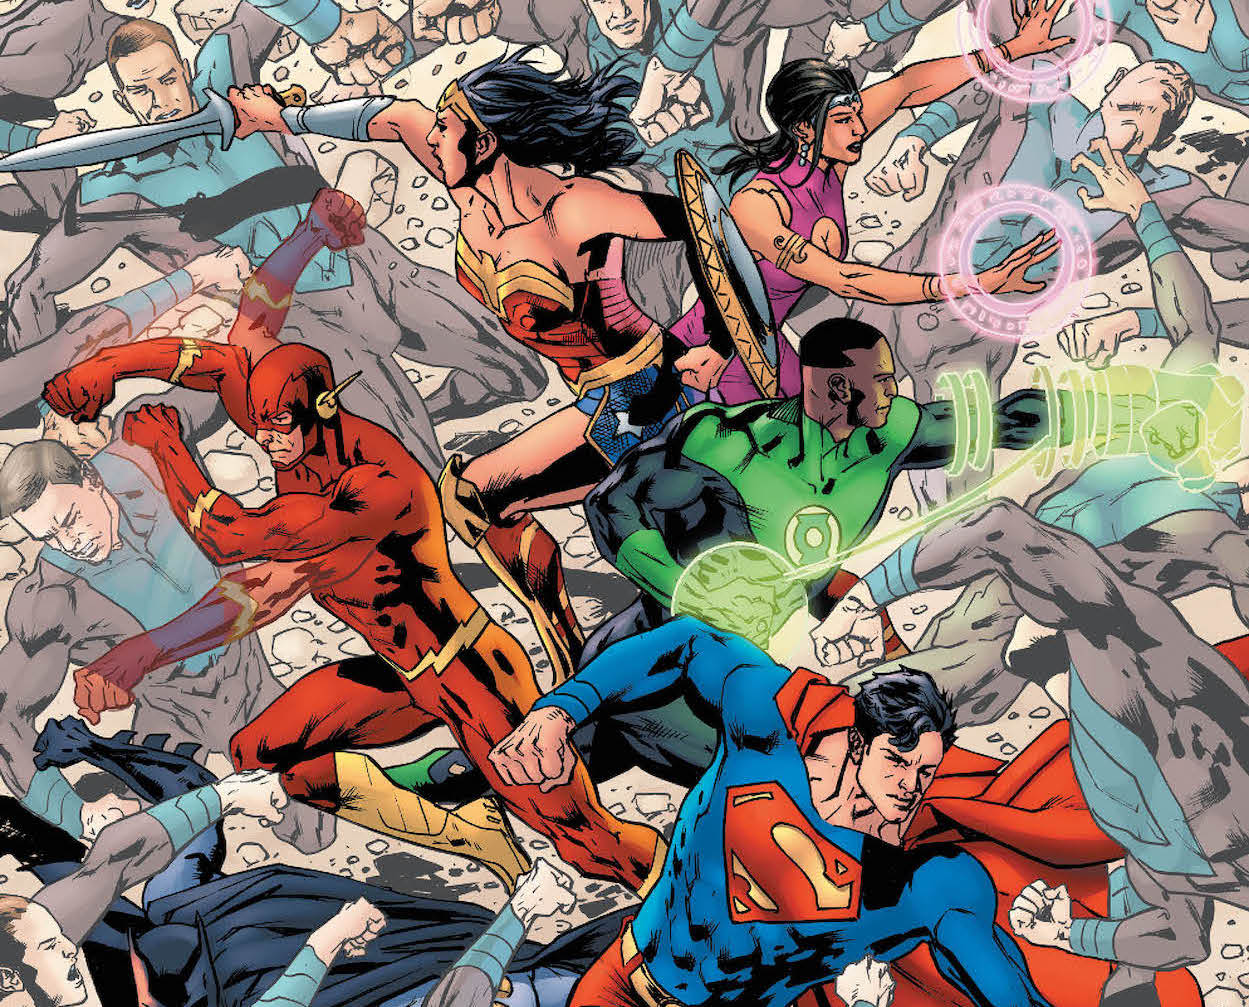 Justice League #40 Review